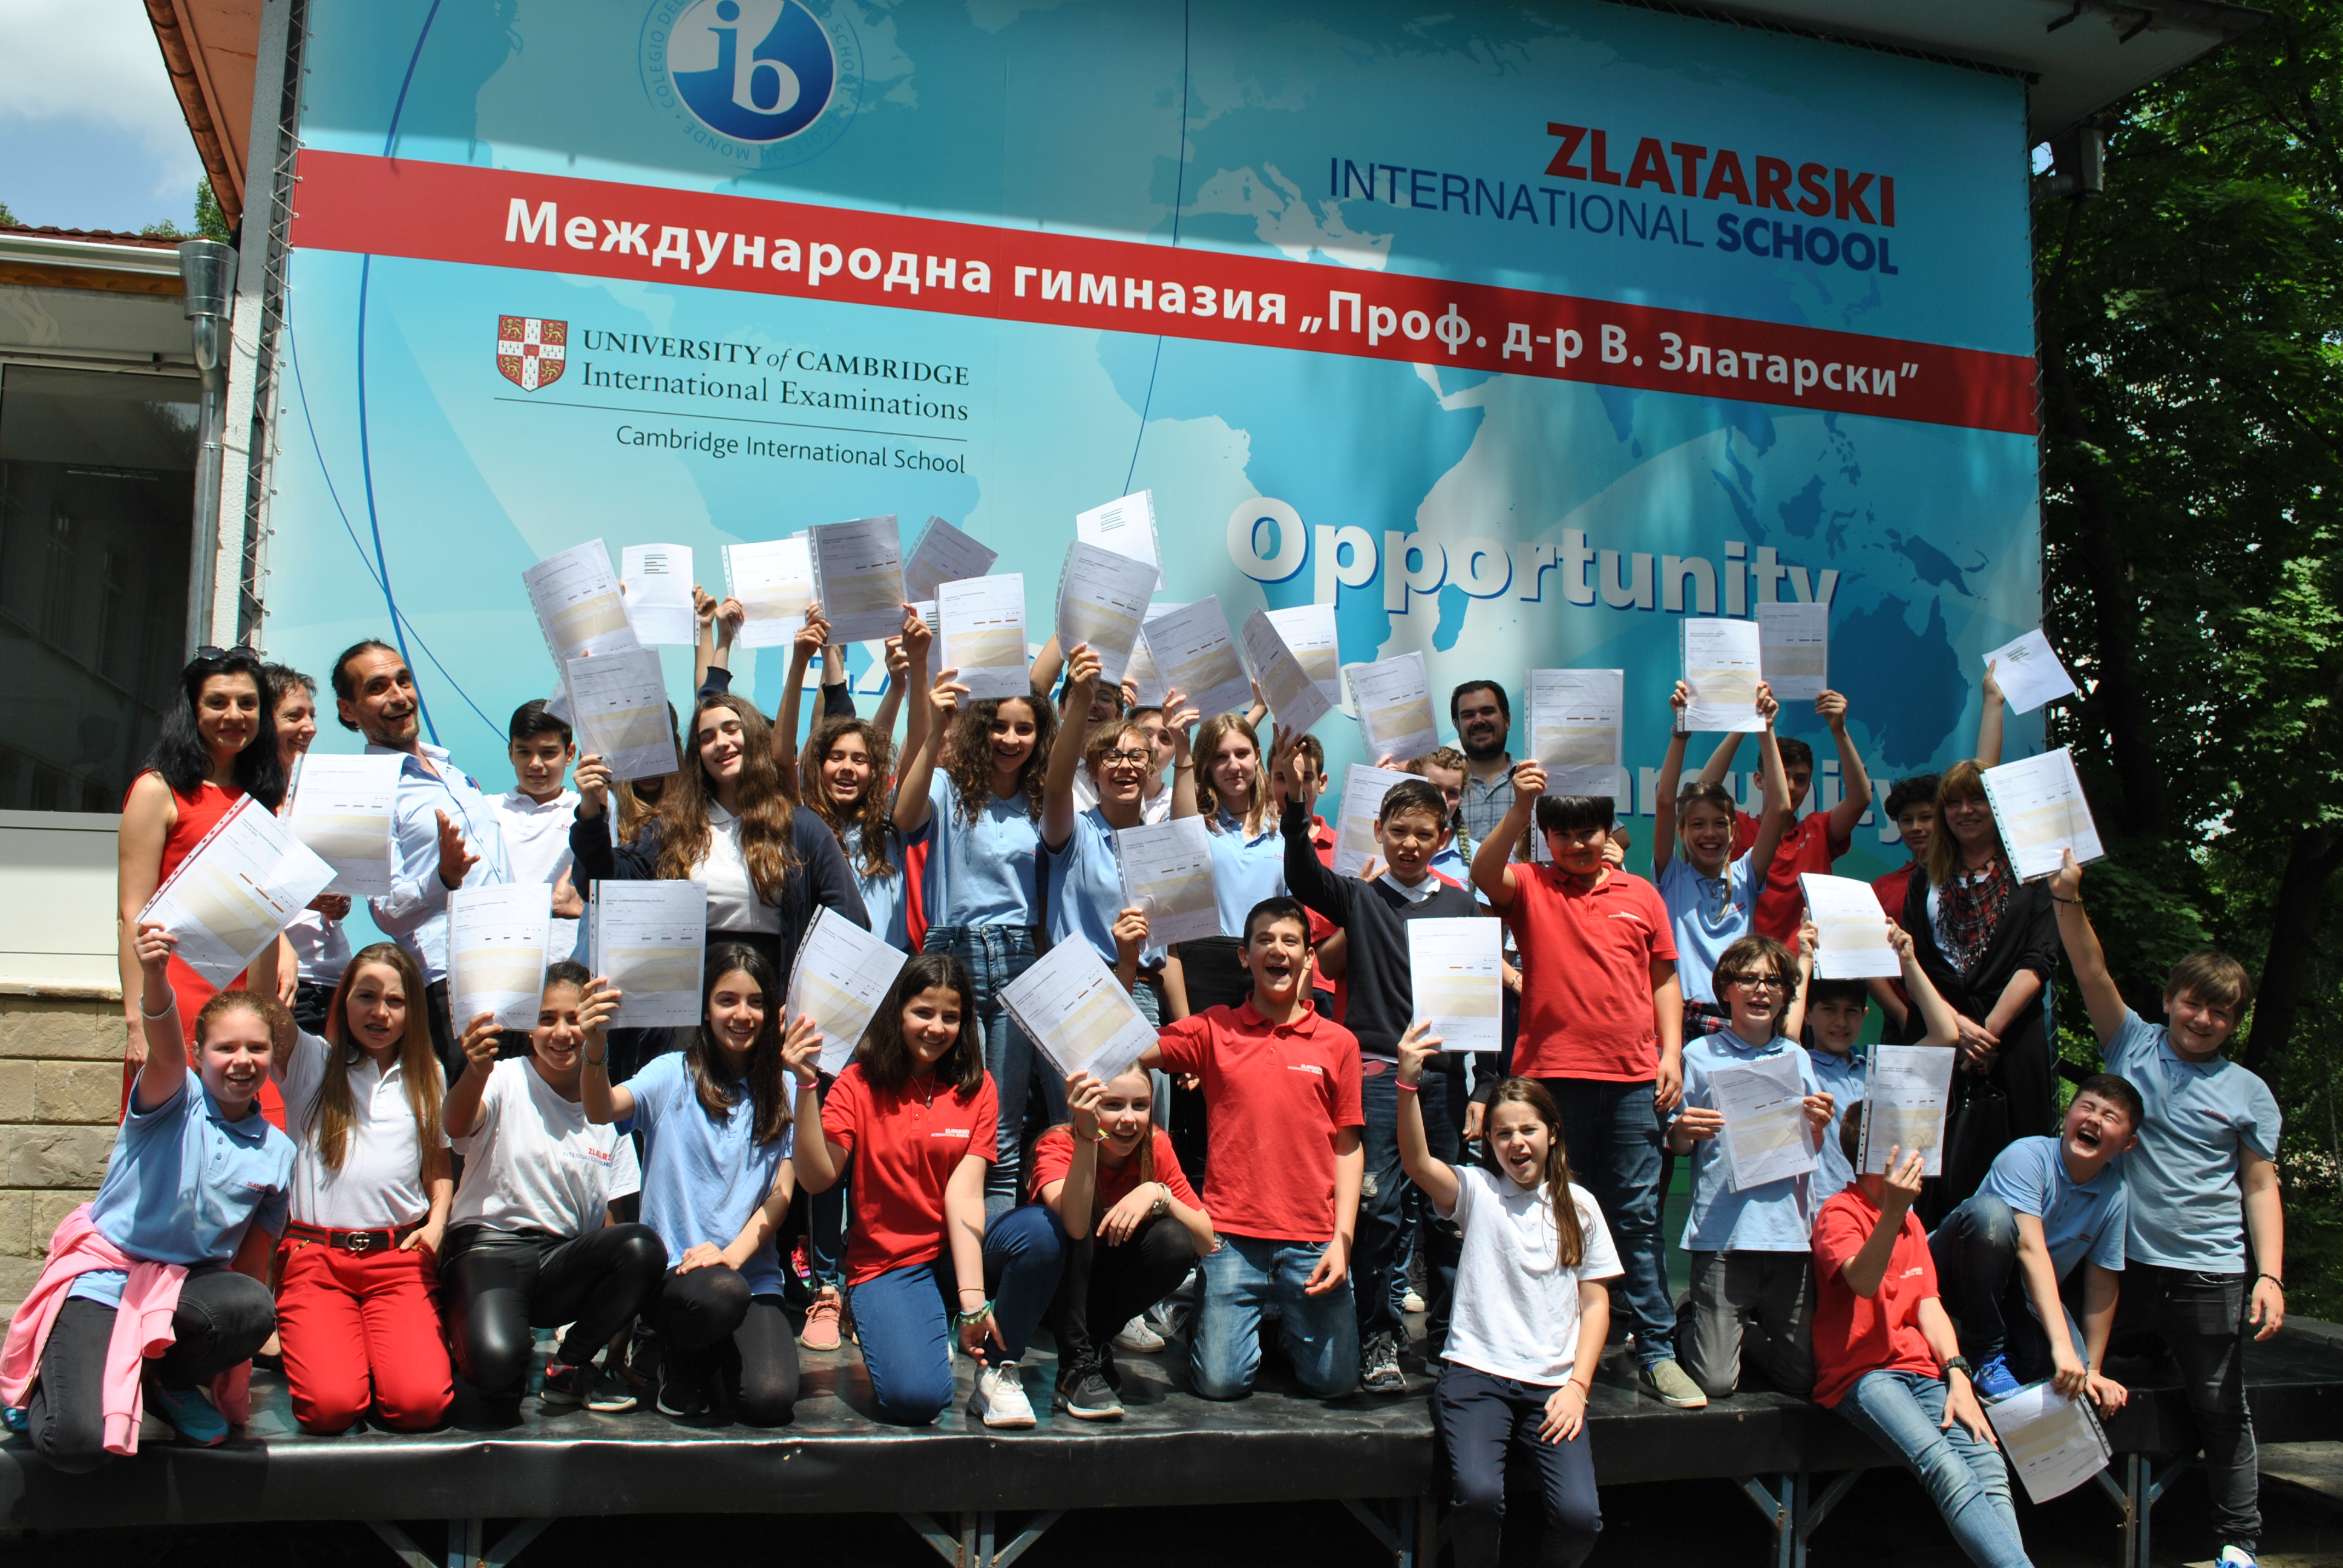 Successful performance in Cambridge Secondary exams by 5-7 grade at Zlatarski International School